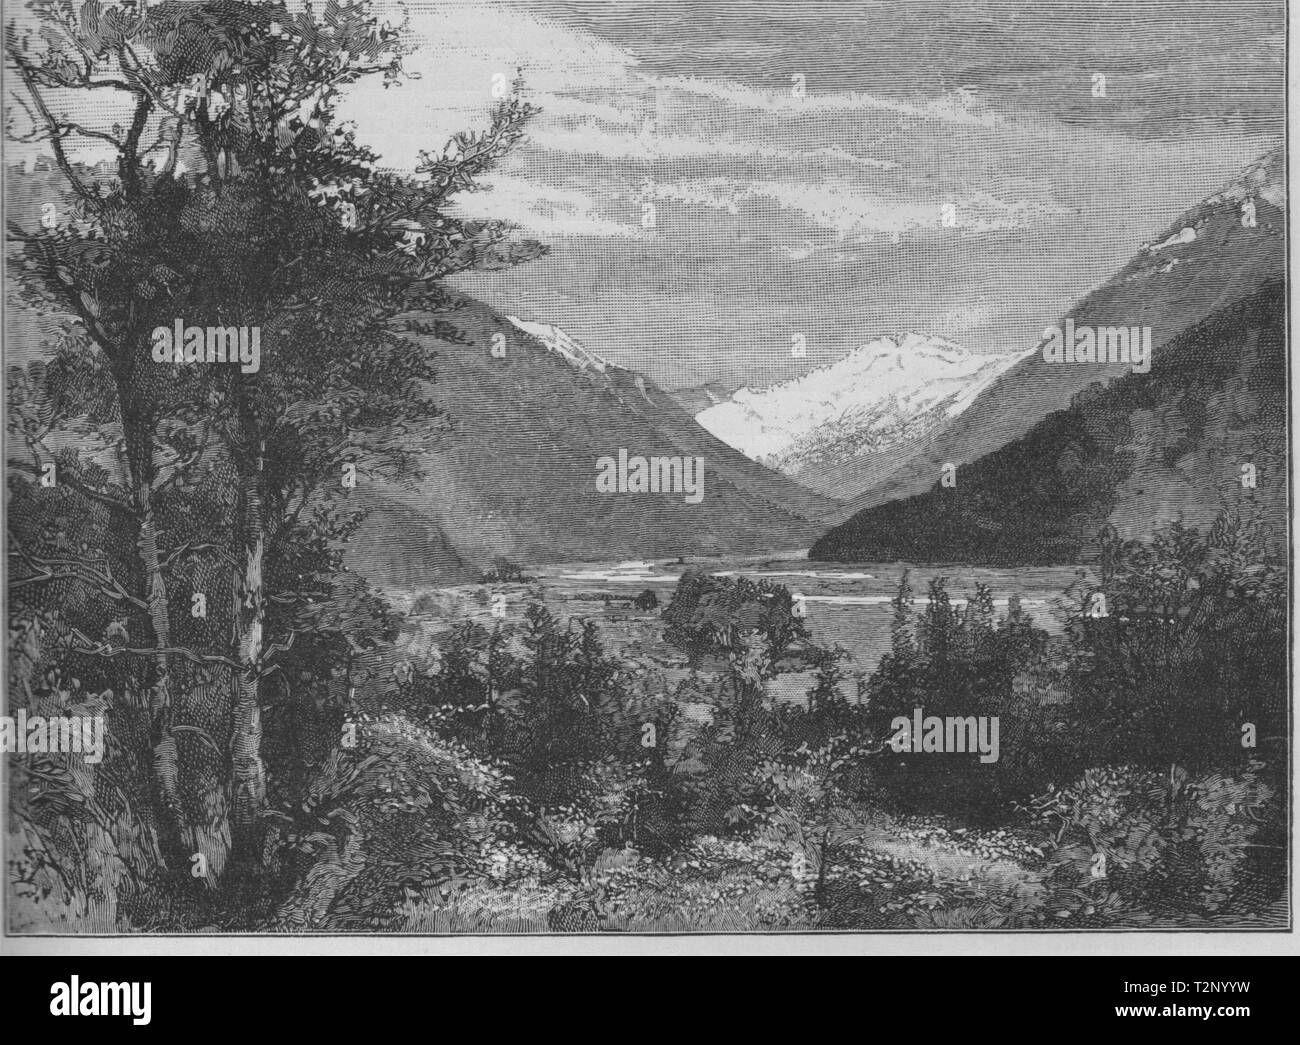 The Bealey River, North Branch. Springfield/West Coast. New Zealand 1890 print - Stock Image